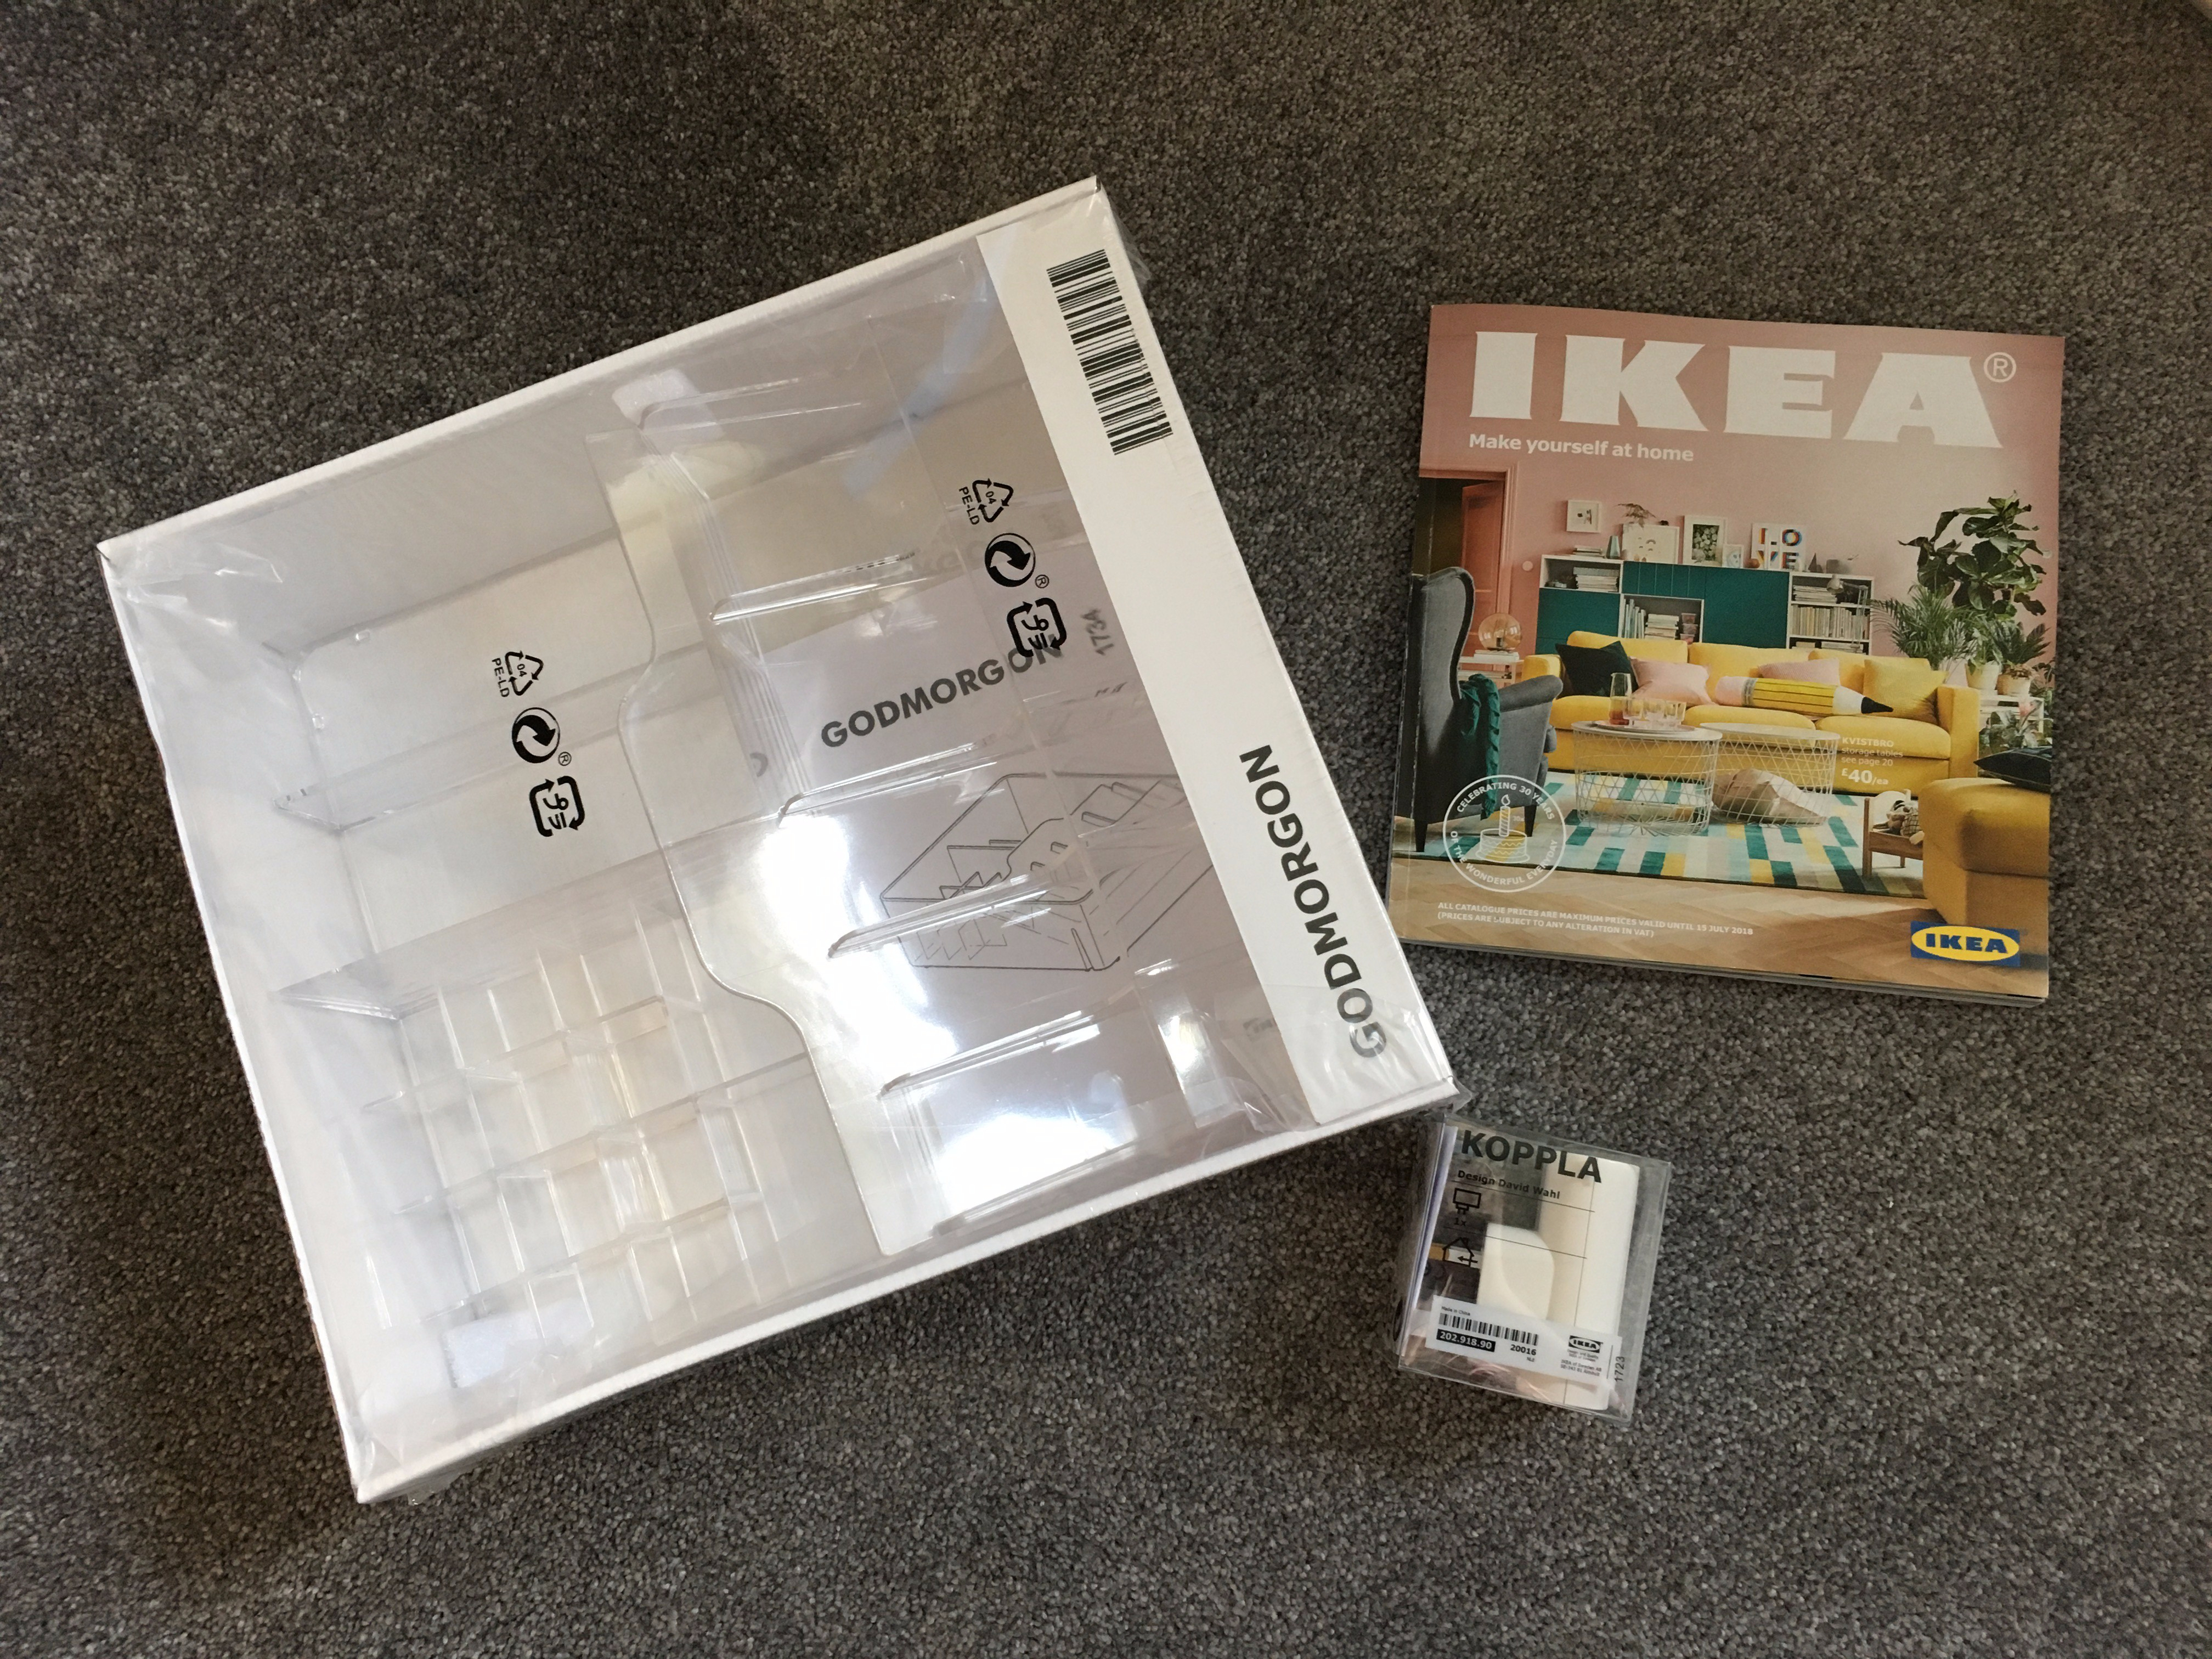 What I bought at Ikea